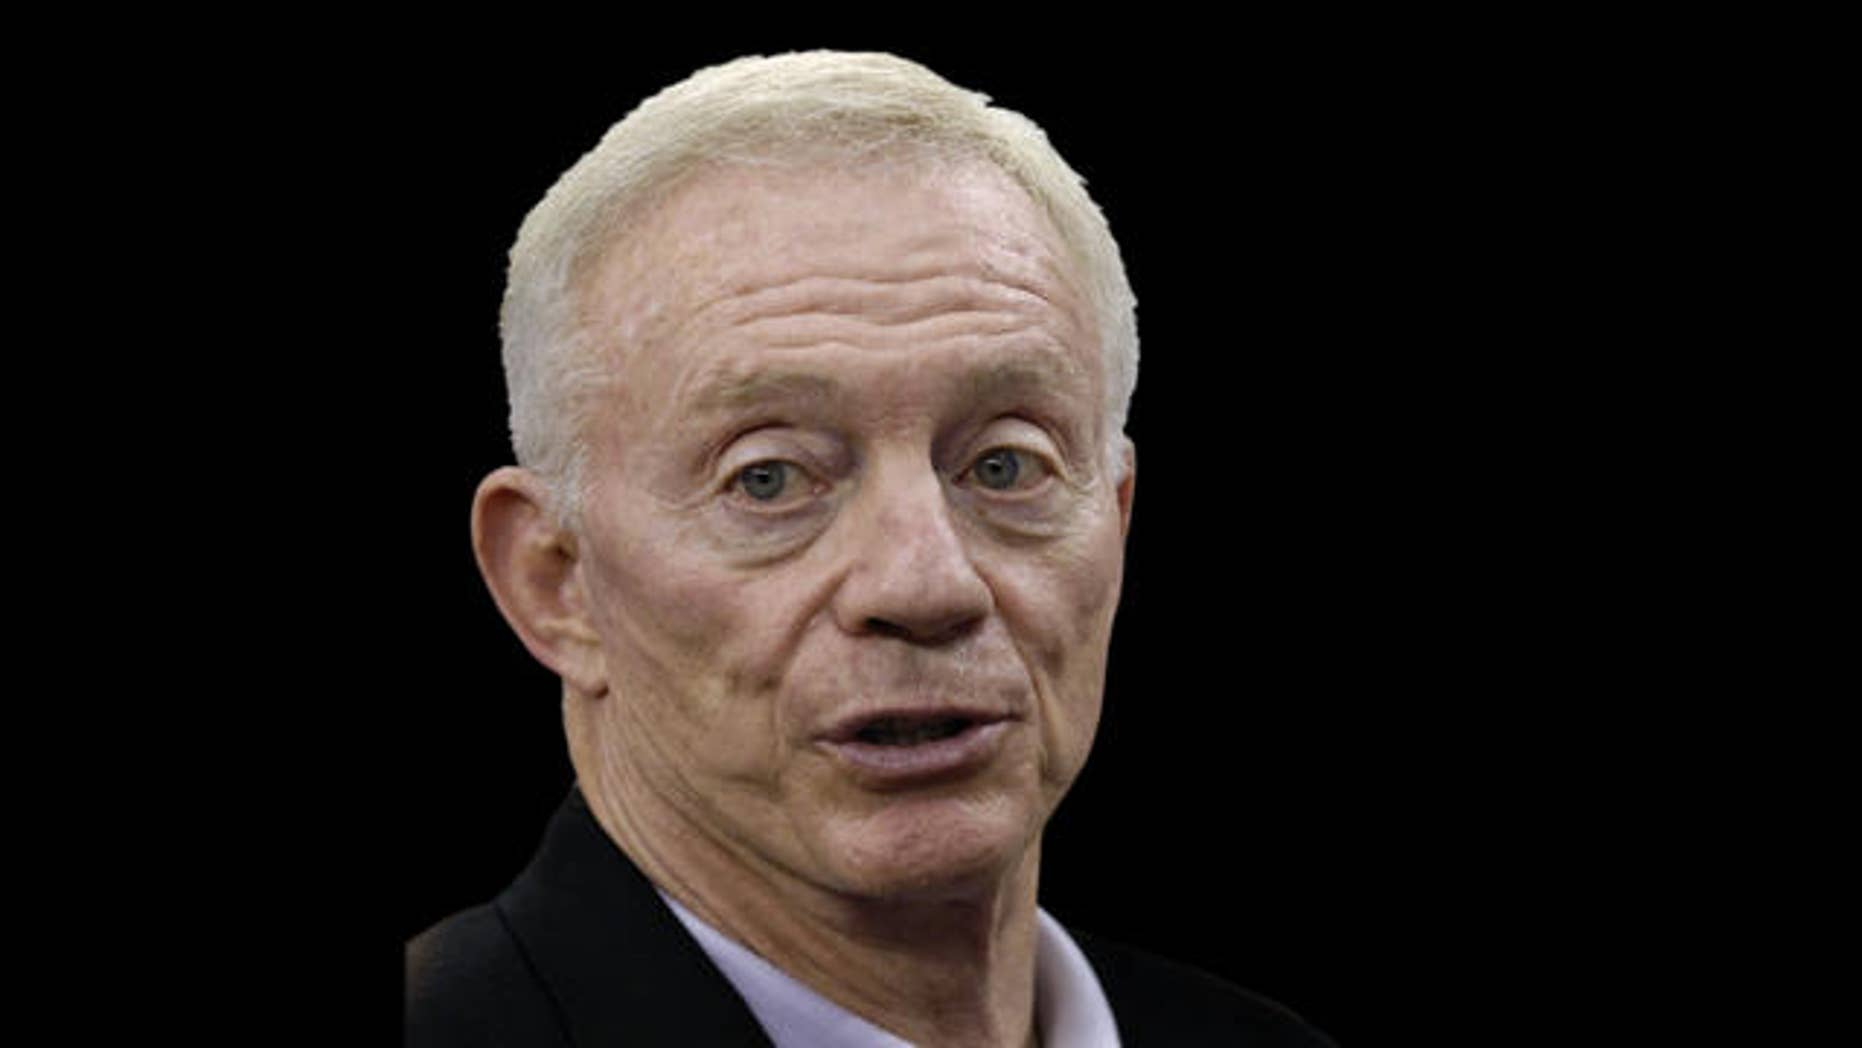 Dallas Cowboys owner Jerry Jones as he answers questions from the media during  football practice at Cowboys Stadium in Arlington, Texas, Wednesday, June 2, 2010.